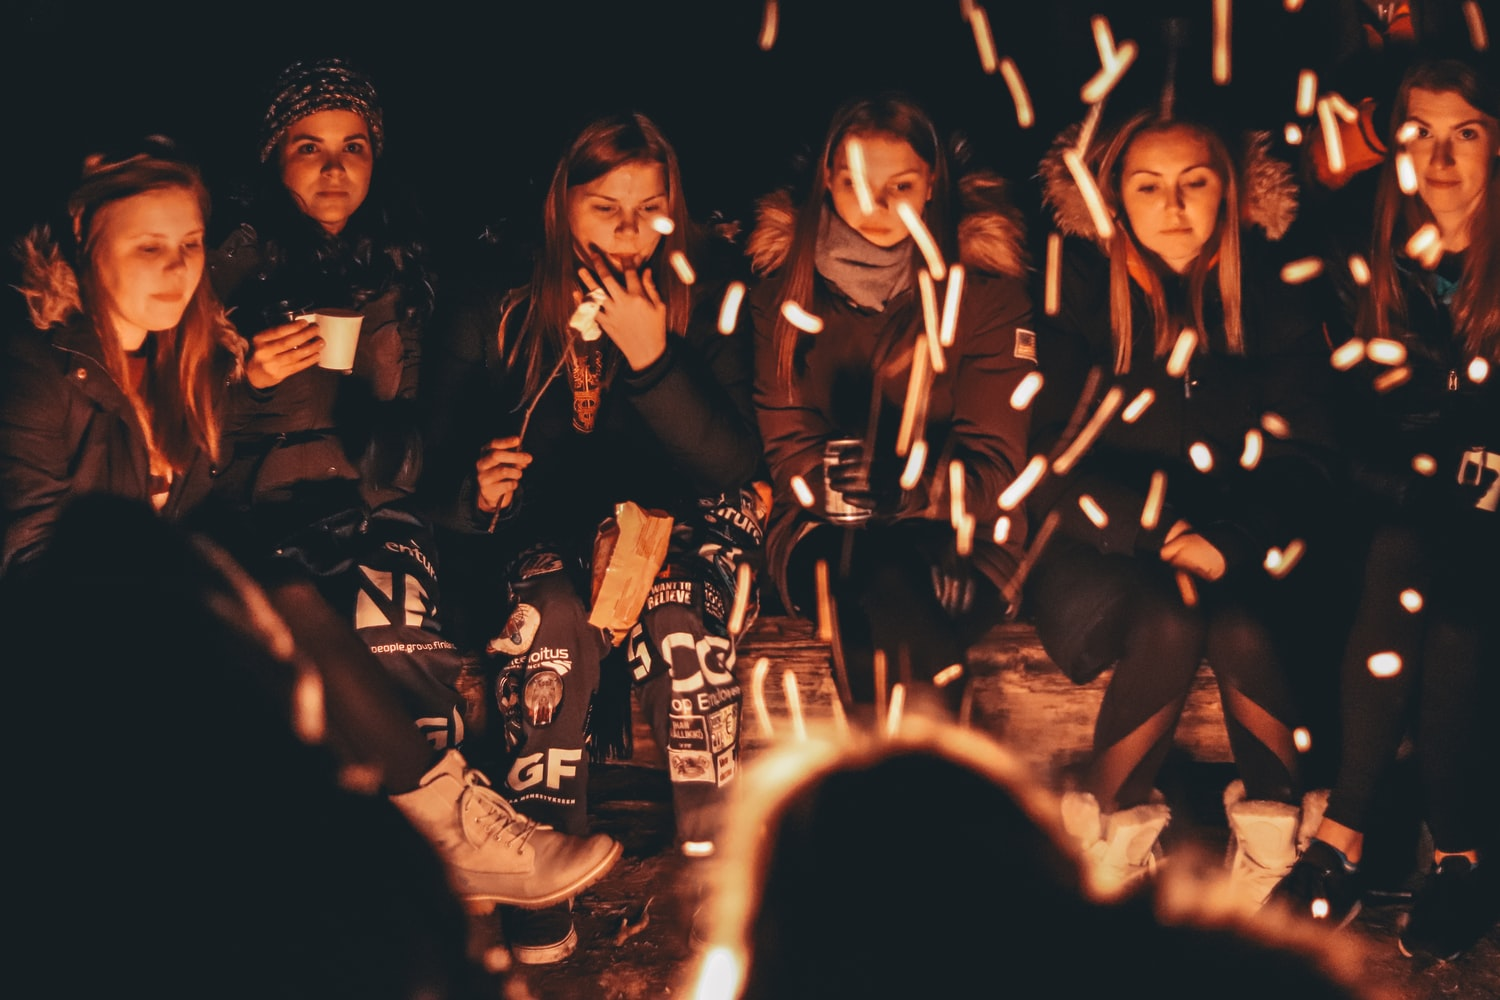 Group of woman wearing a coat and eating some snacks are chatting together with campfire at the center of them